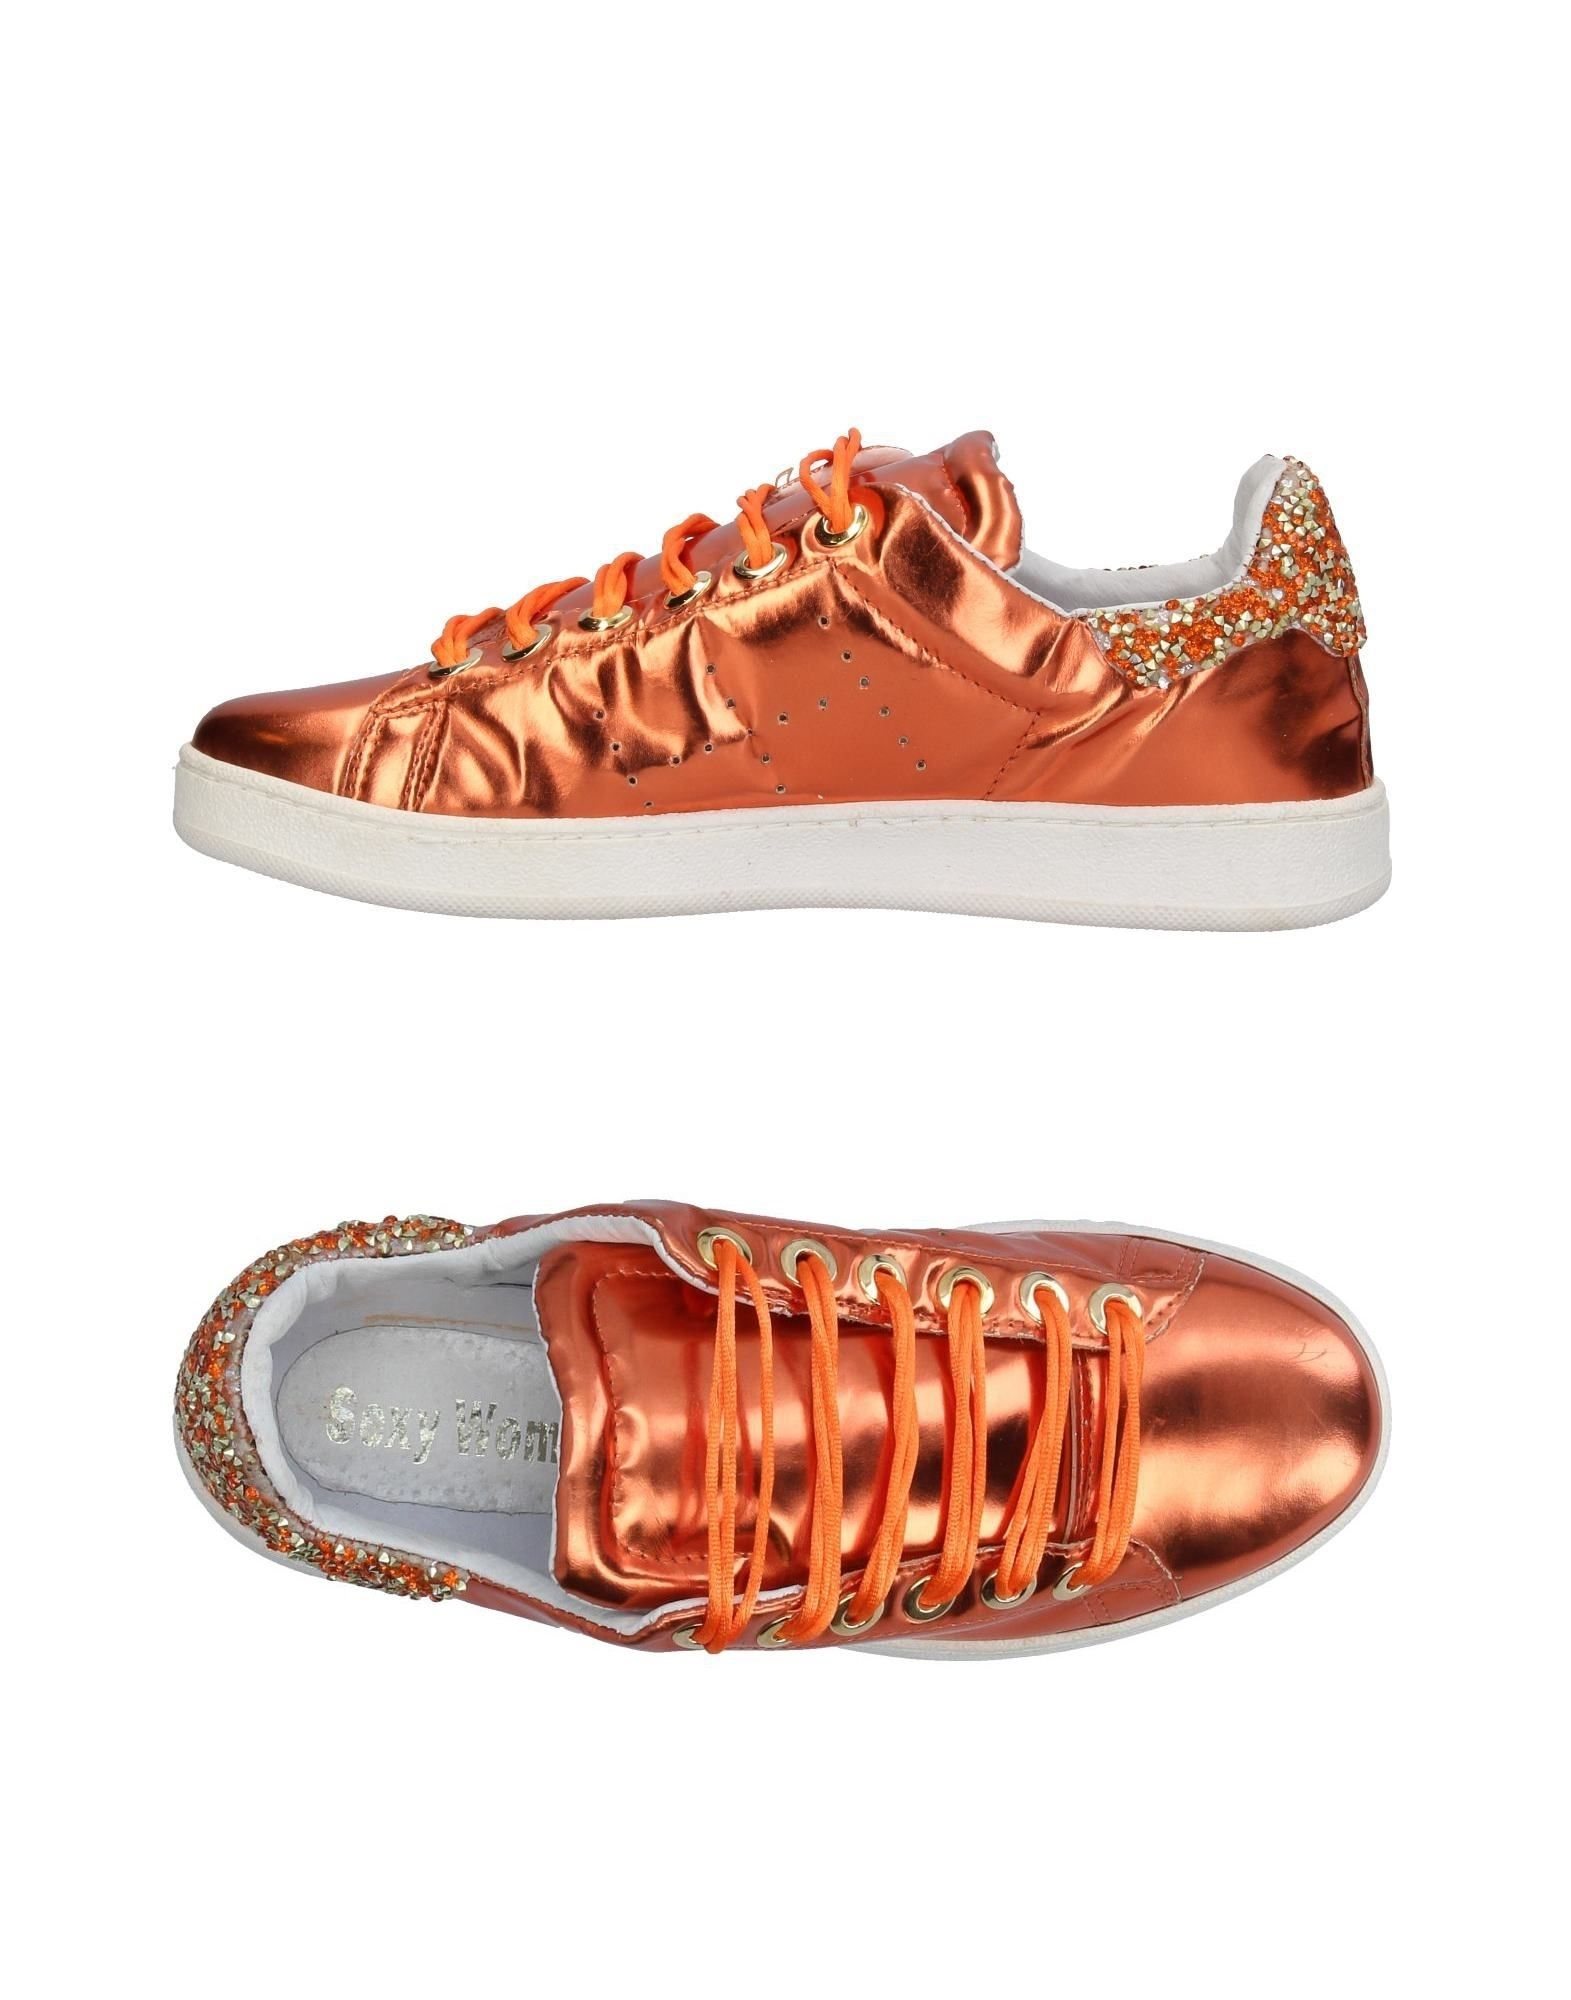 Sneakers Sexy Woman Femme - Sneakers Sexy Woman sur